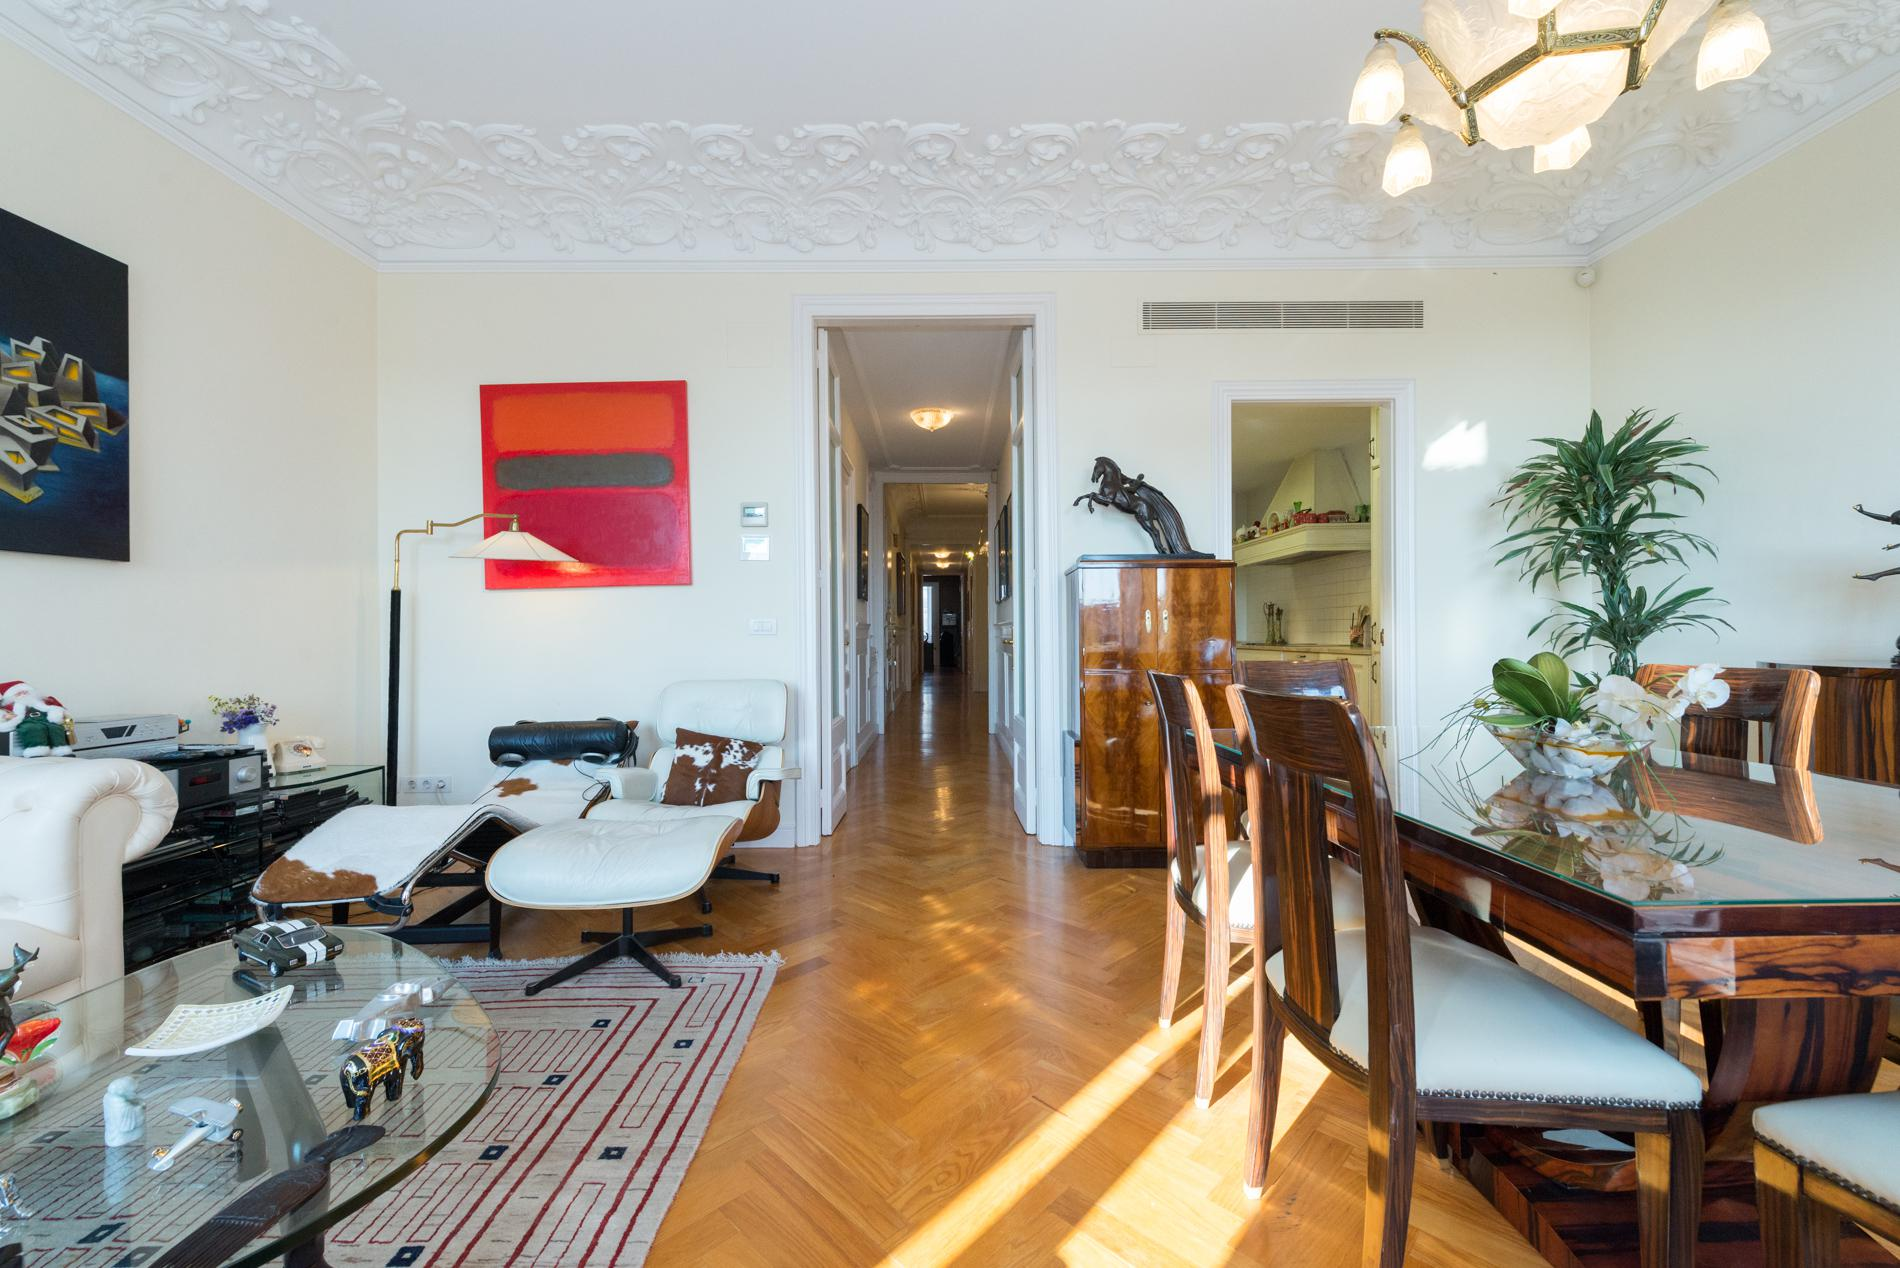 174066 Flat for sale in Eixample, Antiga Esquerre Eixample 14